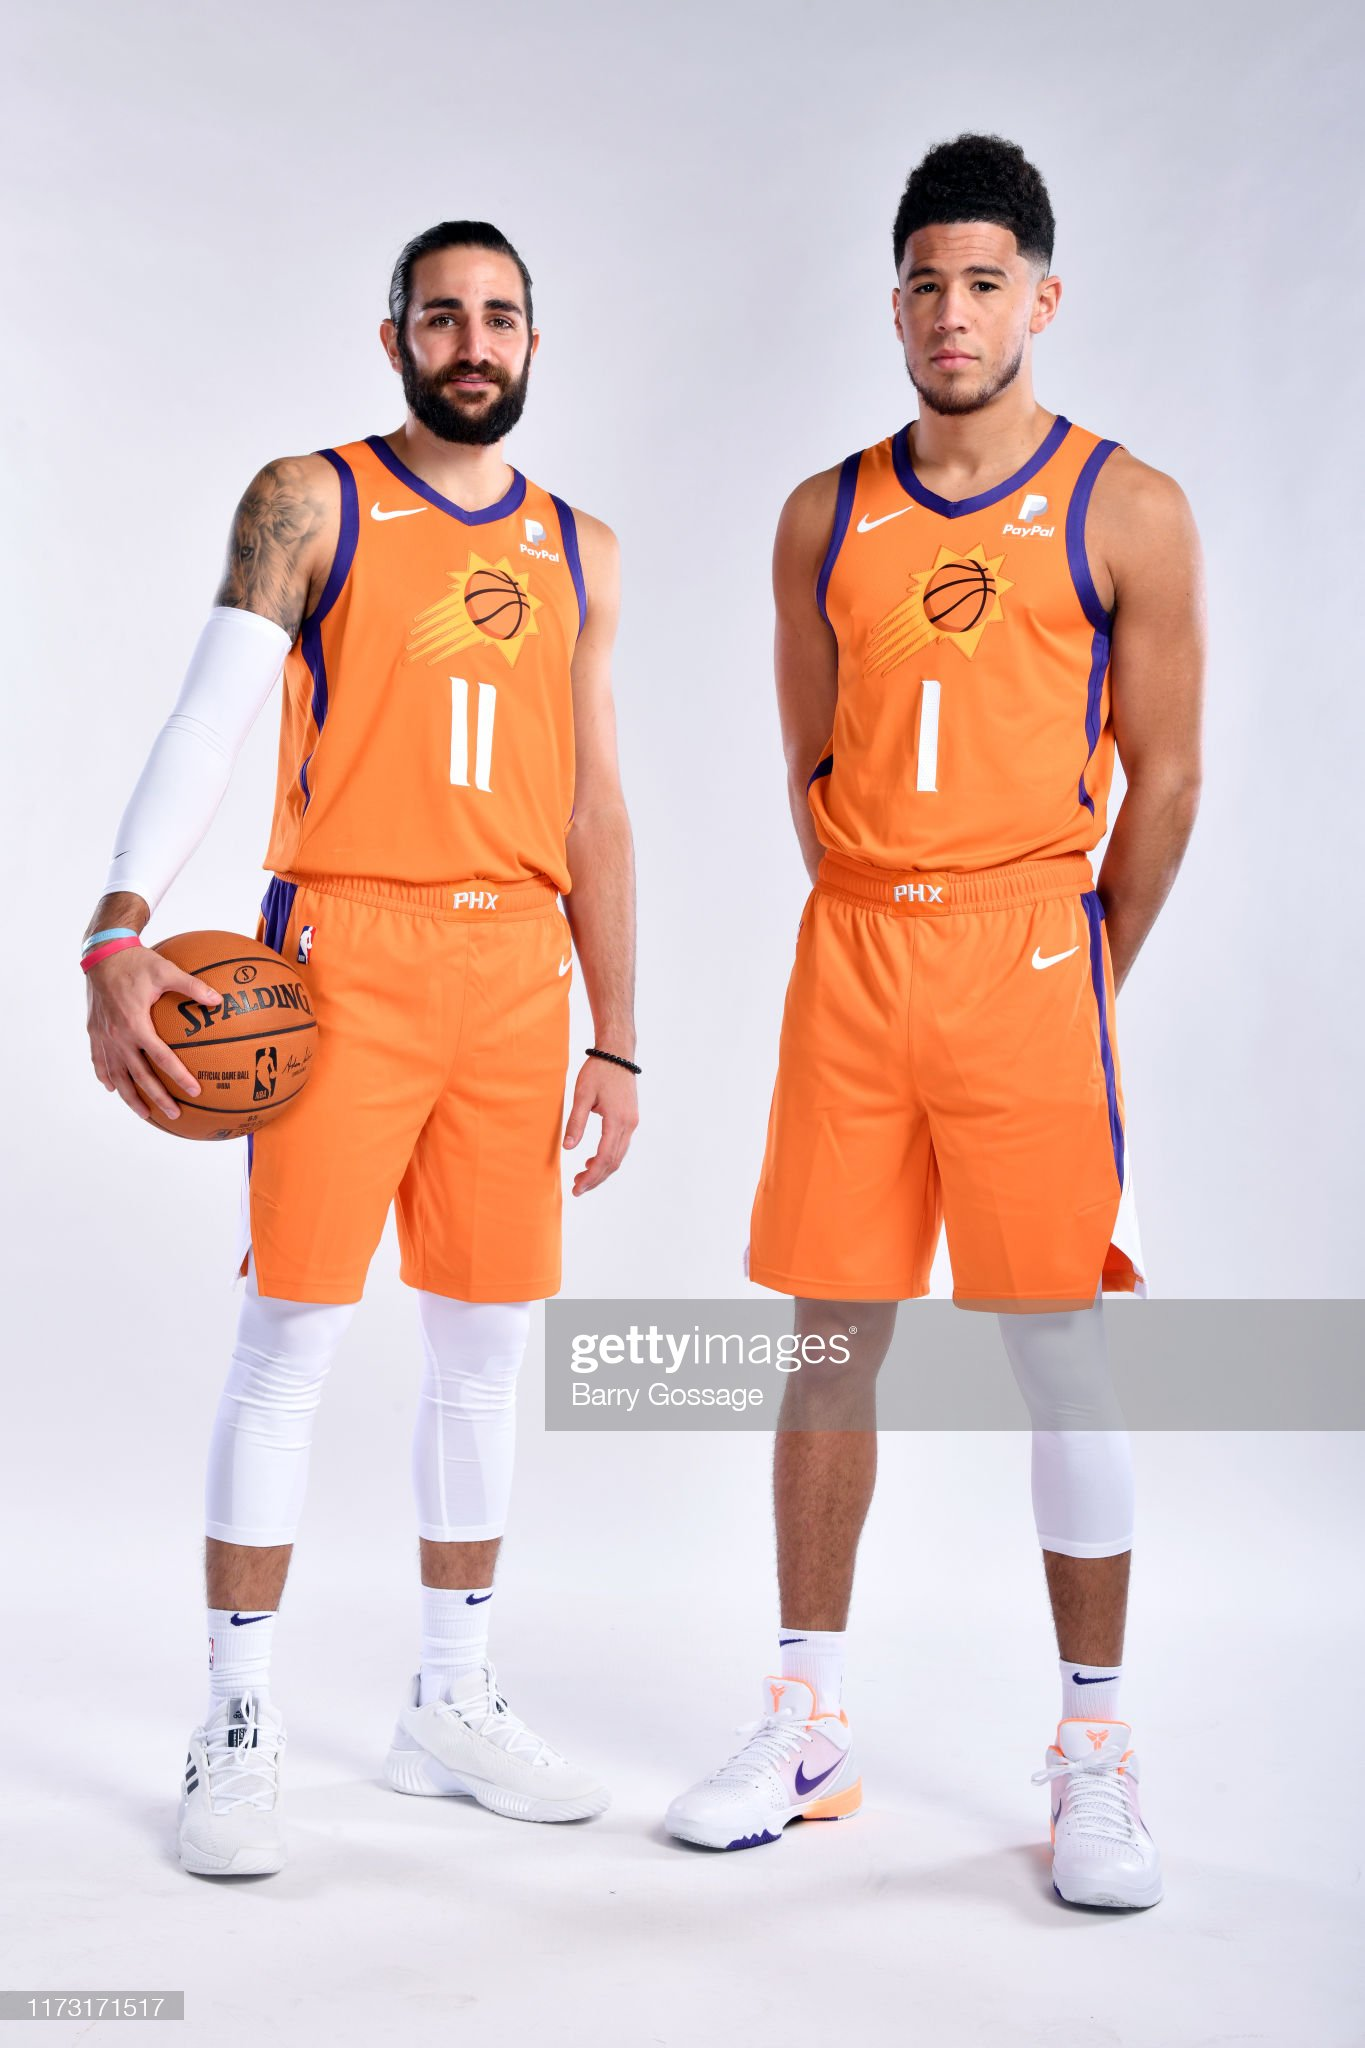 ¿Cuánto mide Ricky Rubio? - Altura - Real height Ricky-rubio-and-devin-booker-of-the-phoenix-suns-poses-for-a-portrait-picture-id1173171517?s=2048x2048